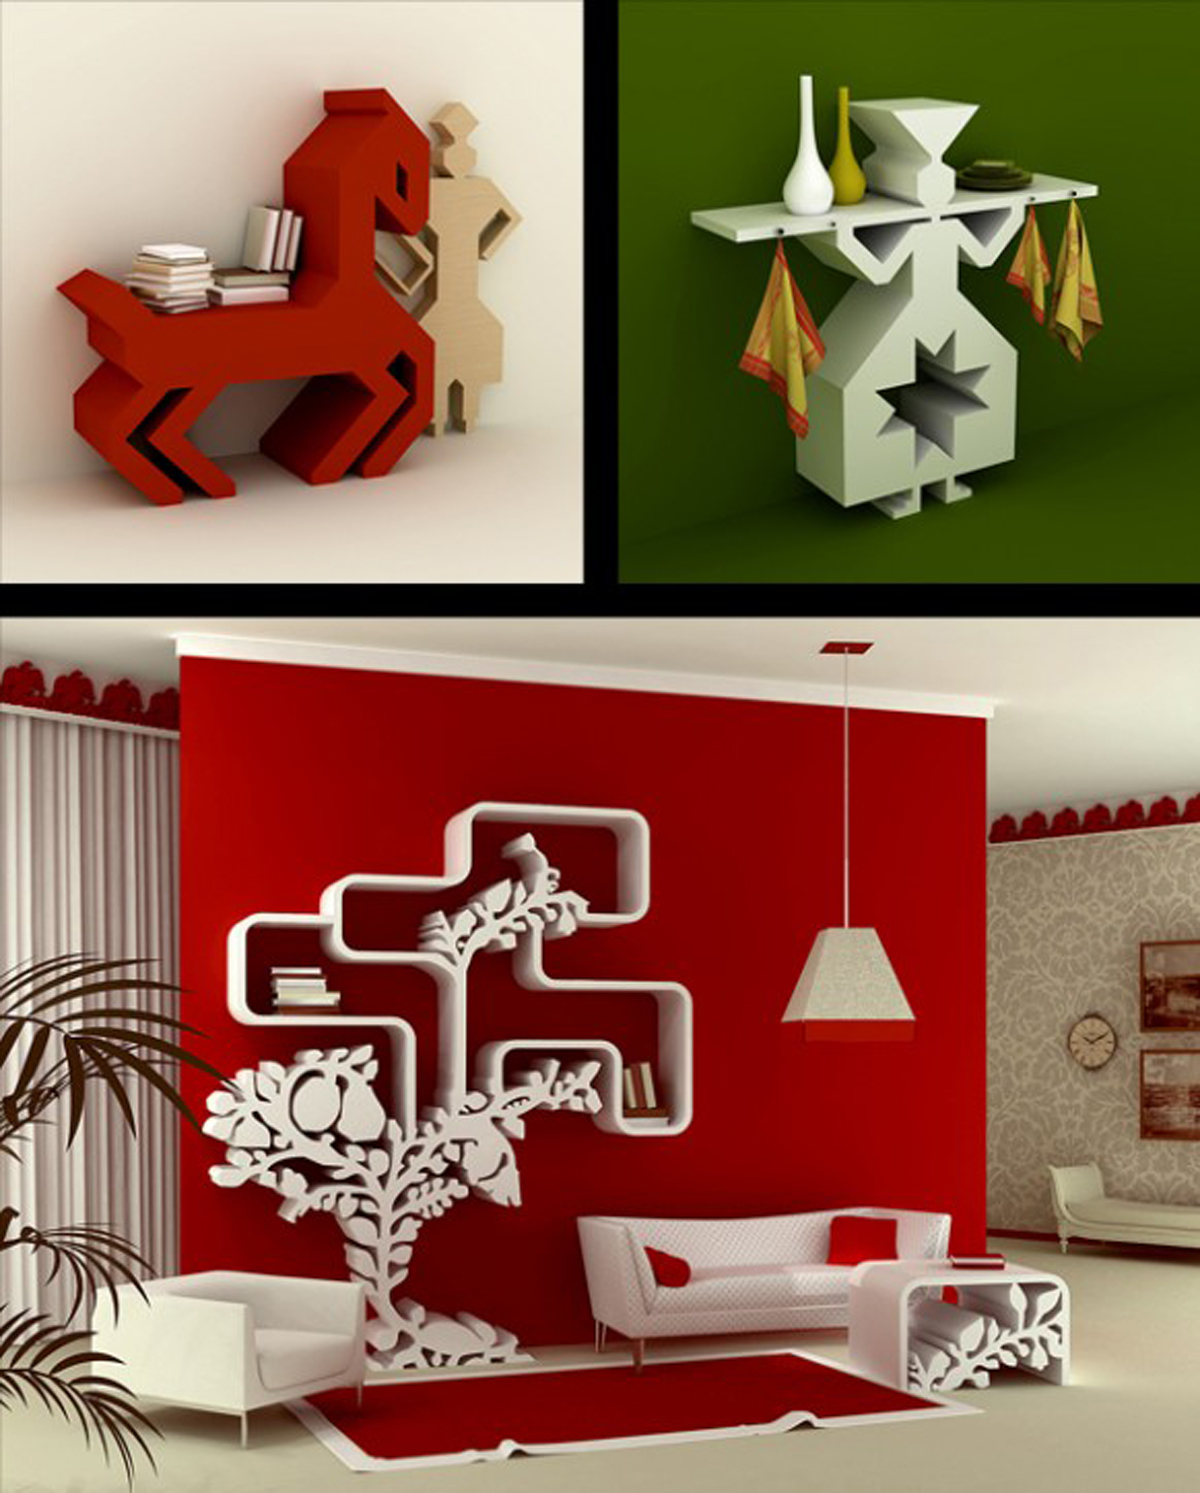 Modular Wall Shelf Designs with Unique Floating Ideas - Iroonie.